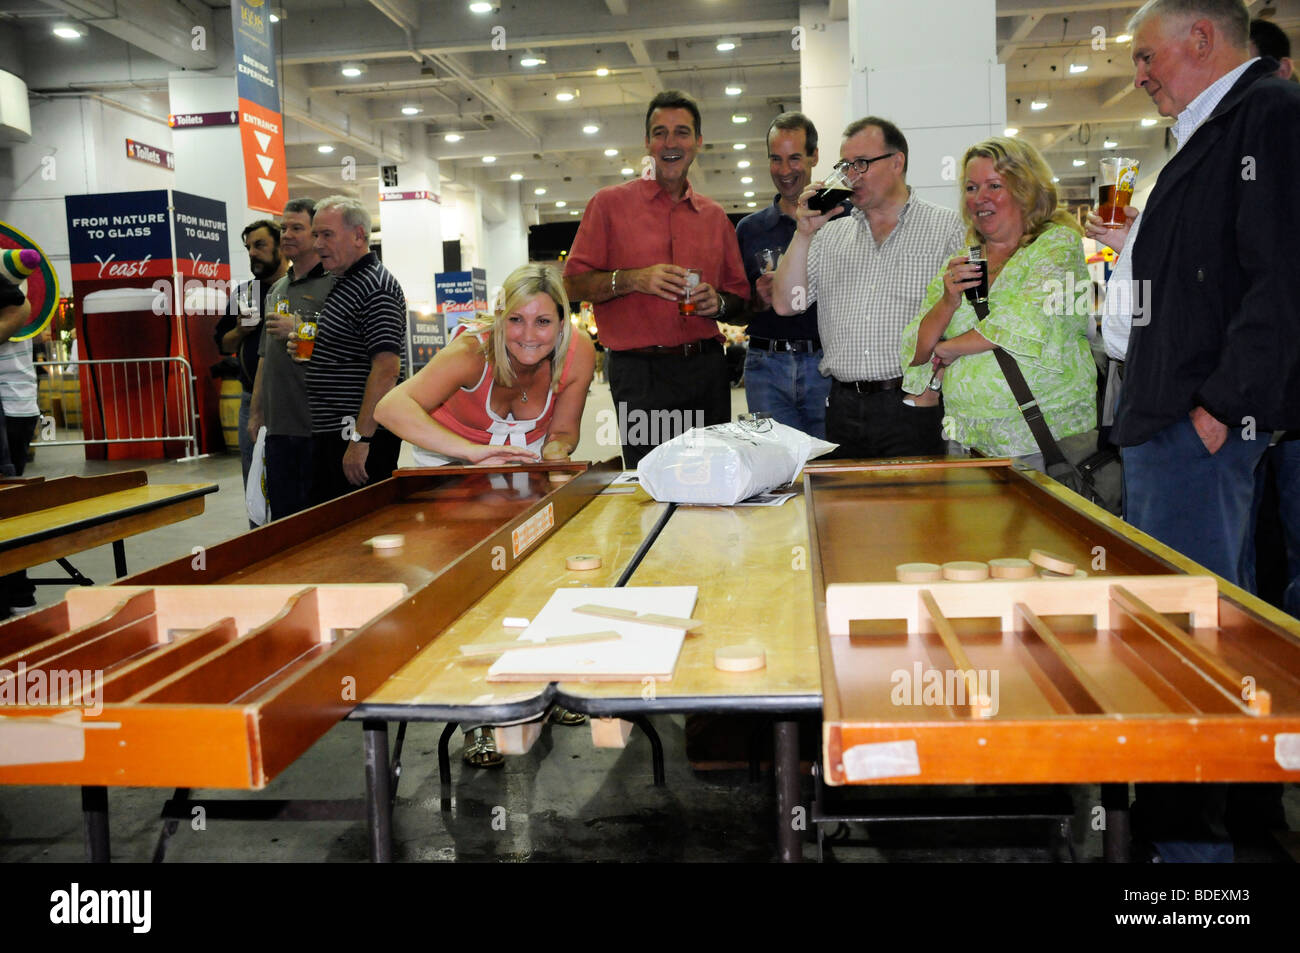 Traditional bar games at the CAMRA Great British Beer Festival, London. - Stock Image